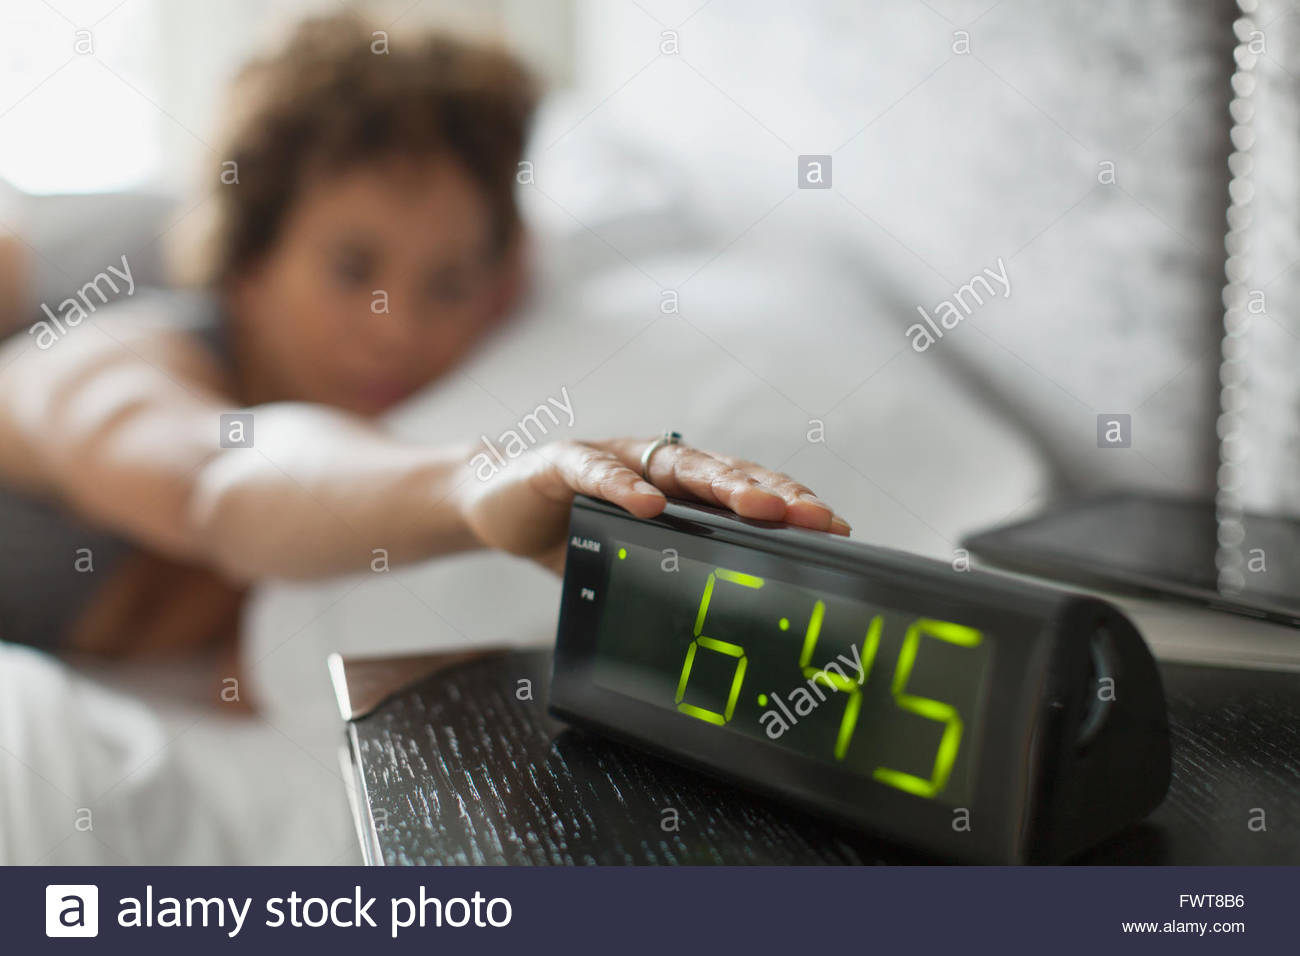 Woman Reaching for bouton snooze sur réveil. Photo Stock